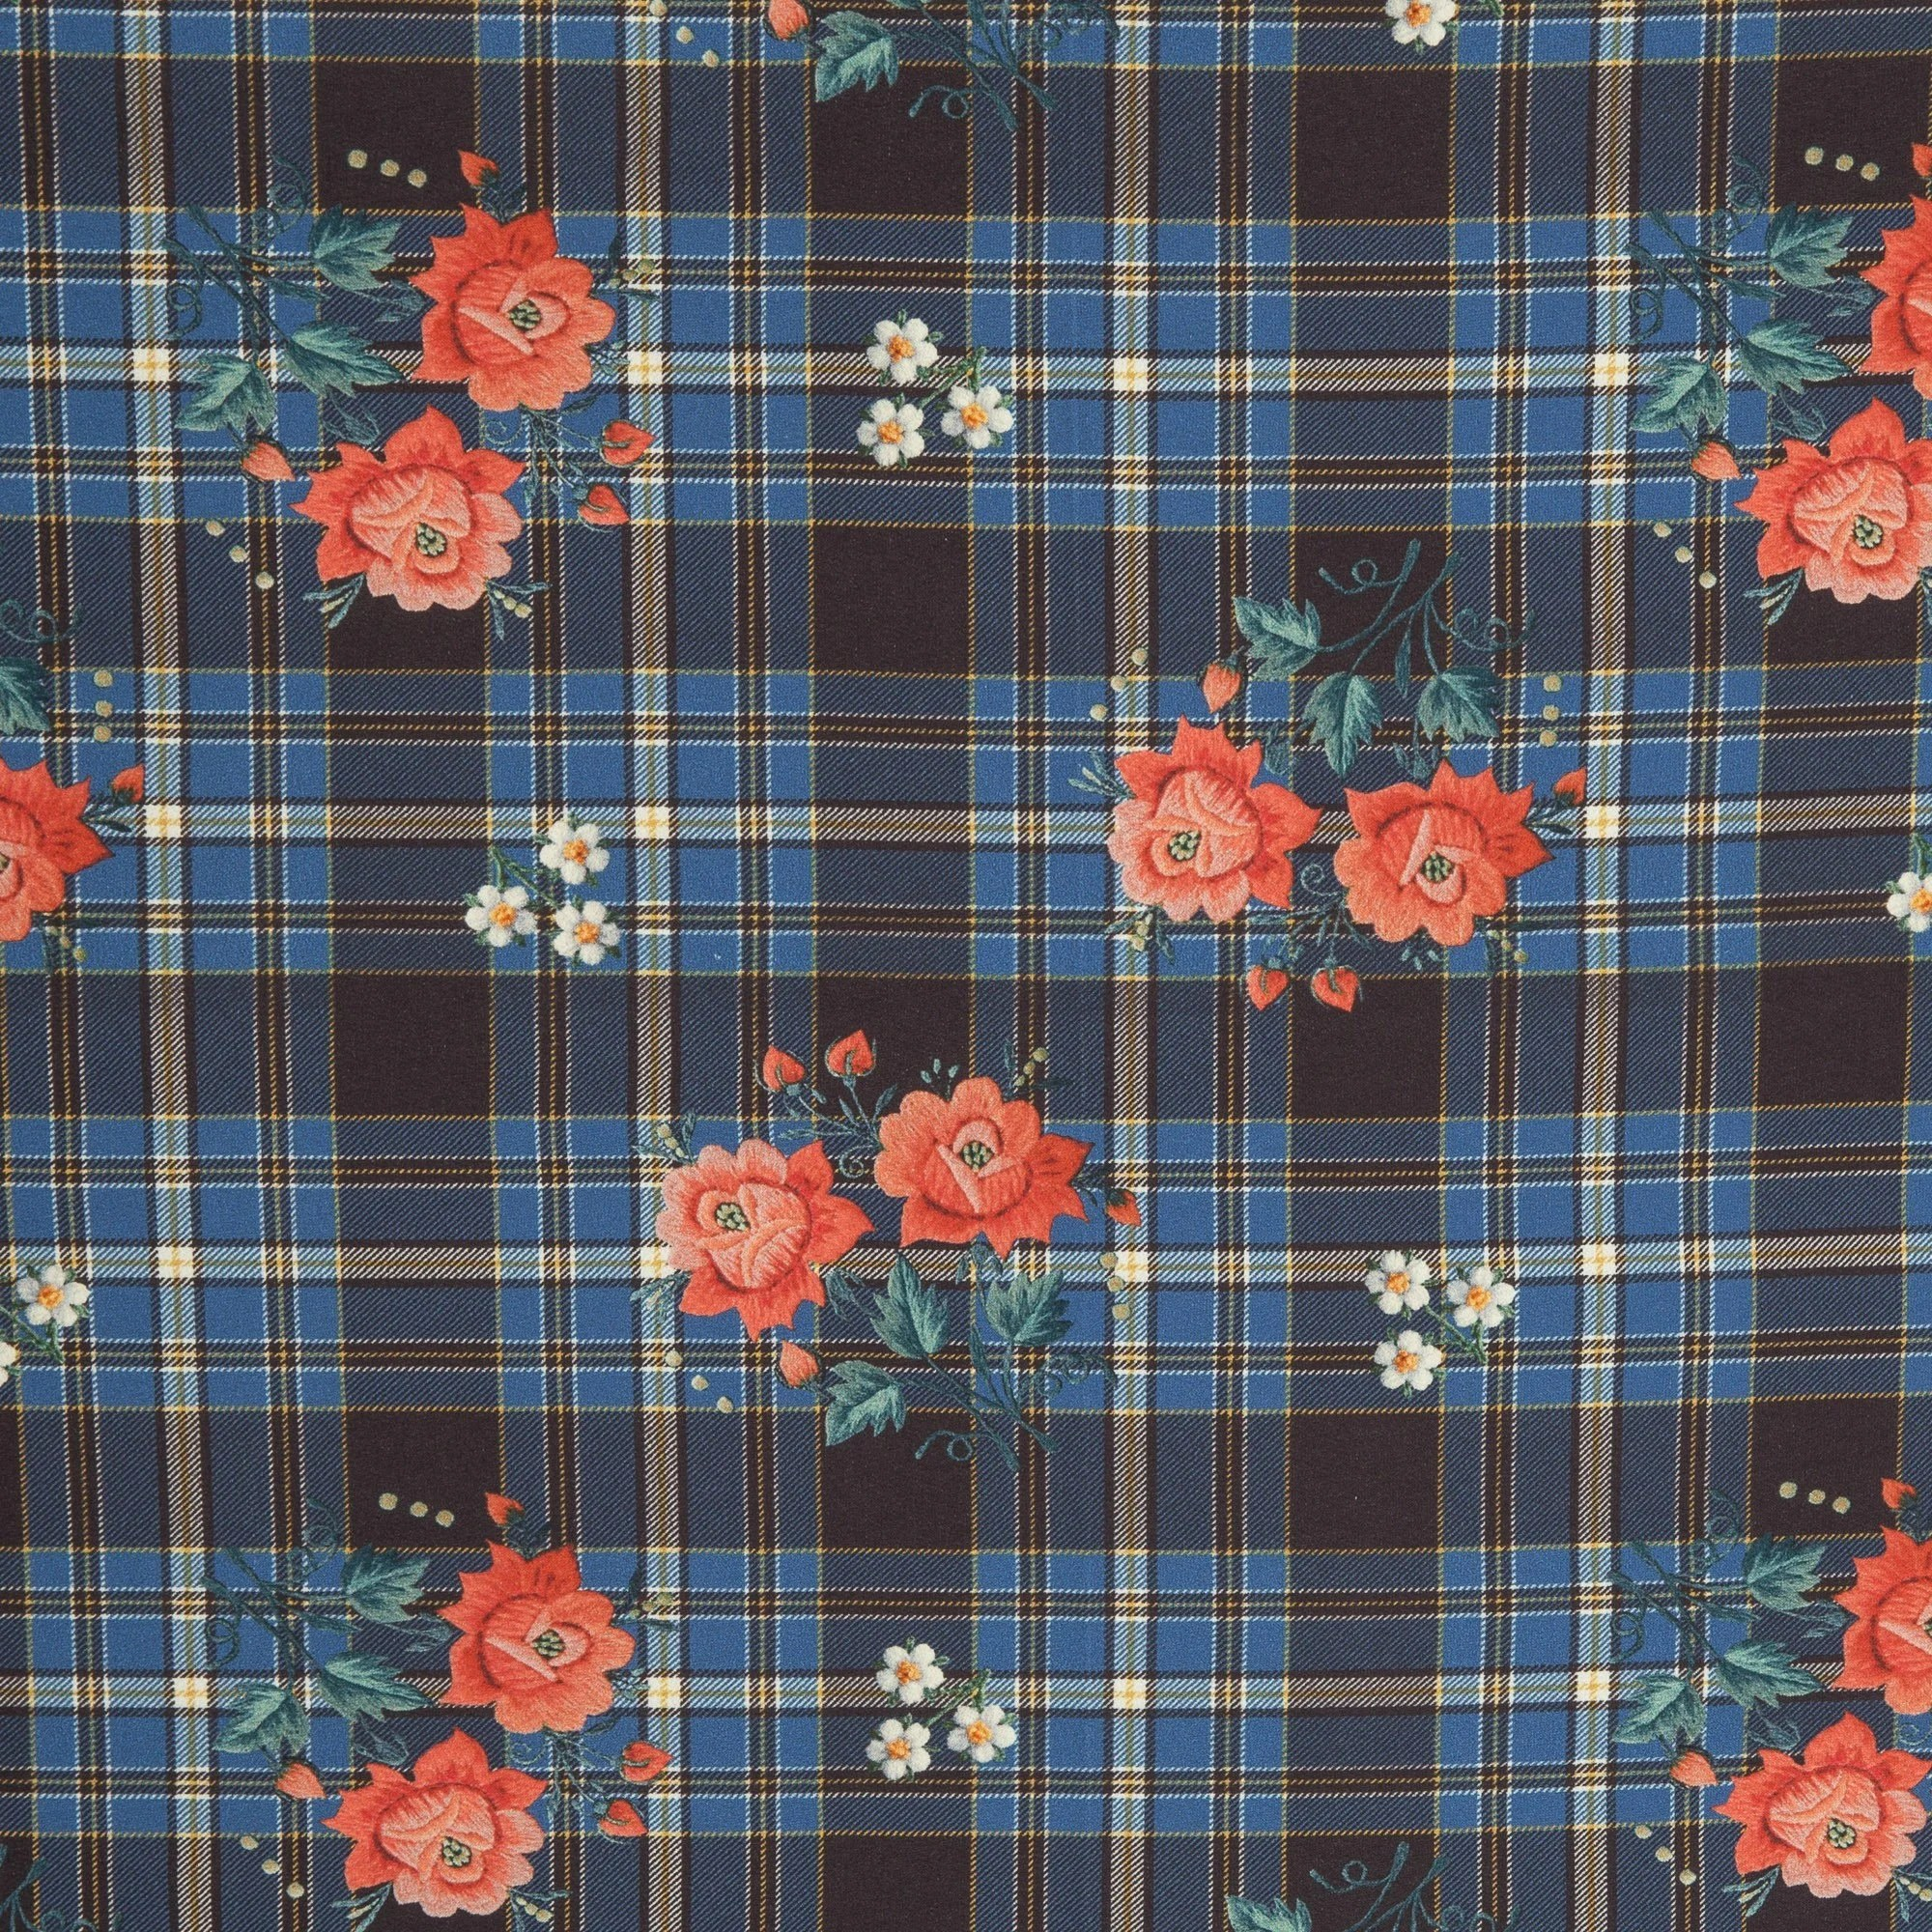 Stofftruhe Leipzig French Terry Jette Flowers Colorful On Dark Blue Plaid